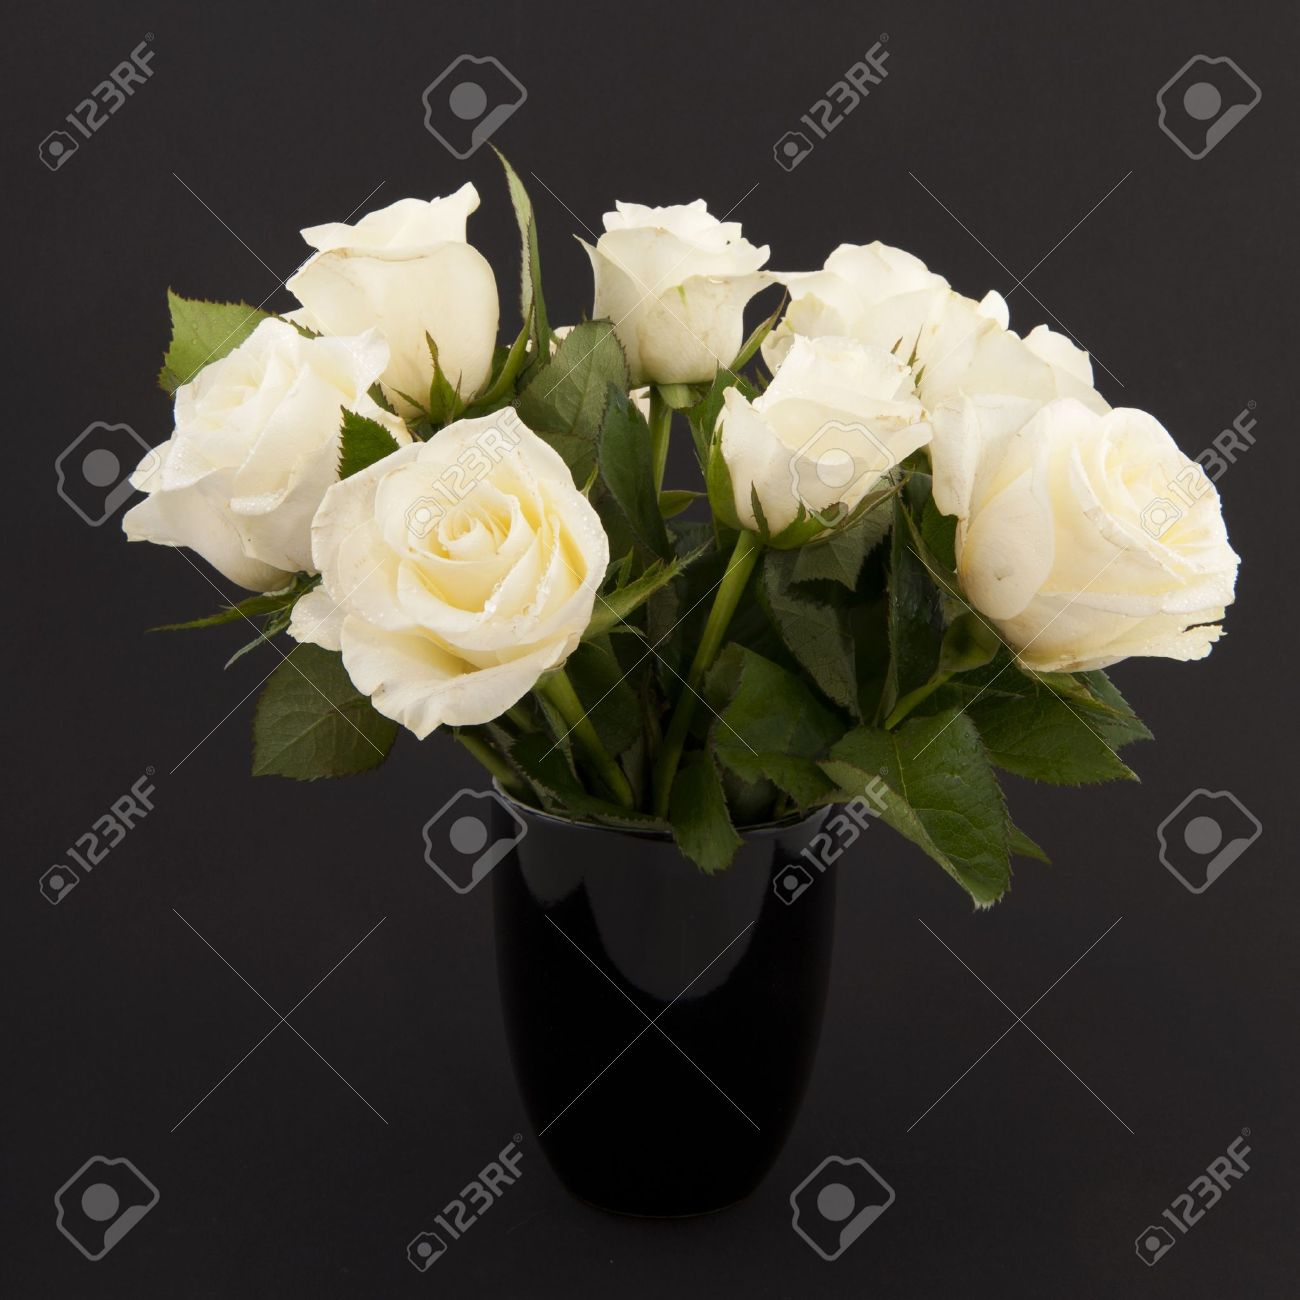 Vase white roses for a funeral isolated on black stock photo stock photo vase white roses for a funeral isolated on black mightylinksfo Image collections